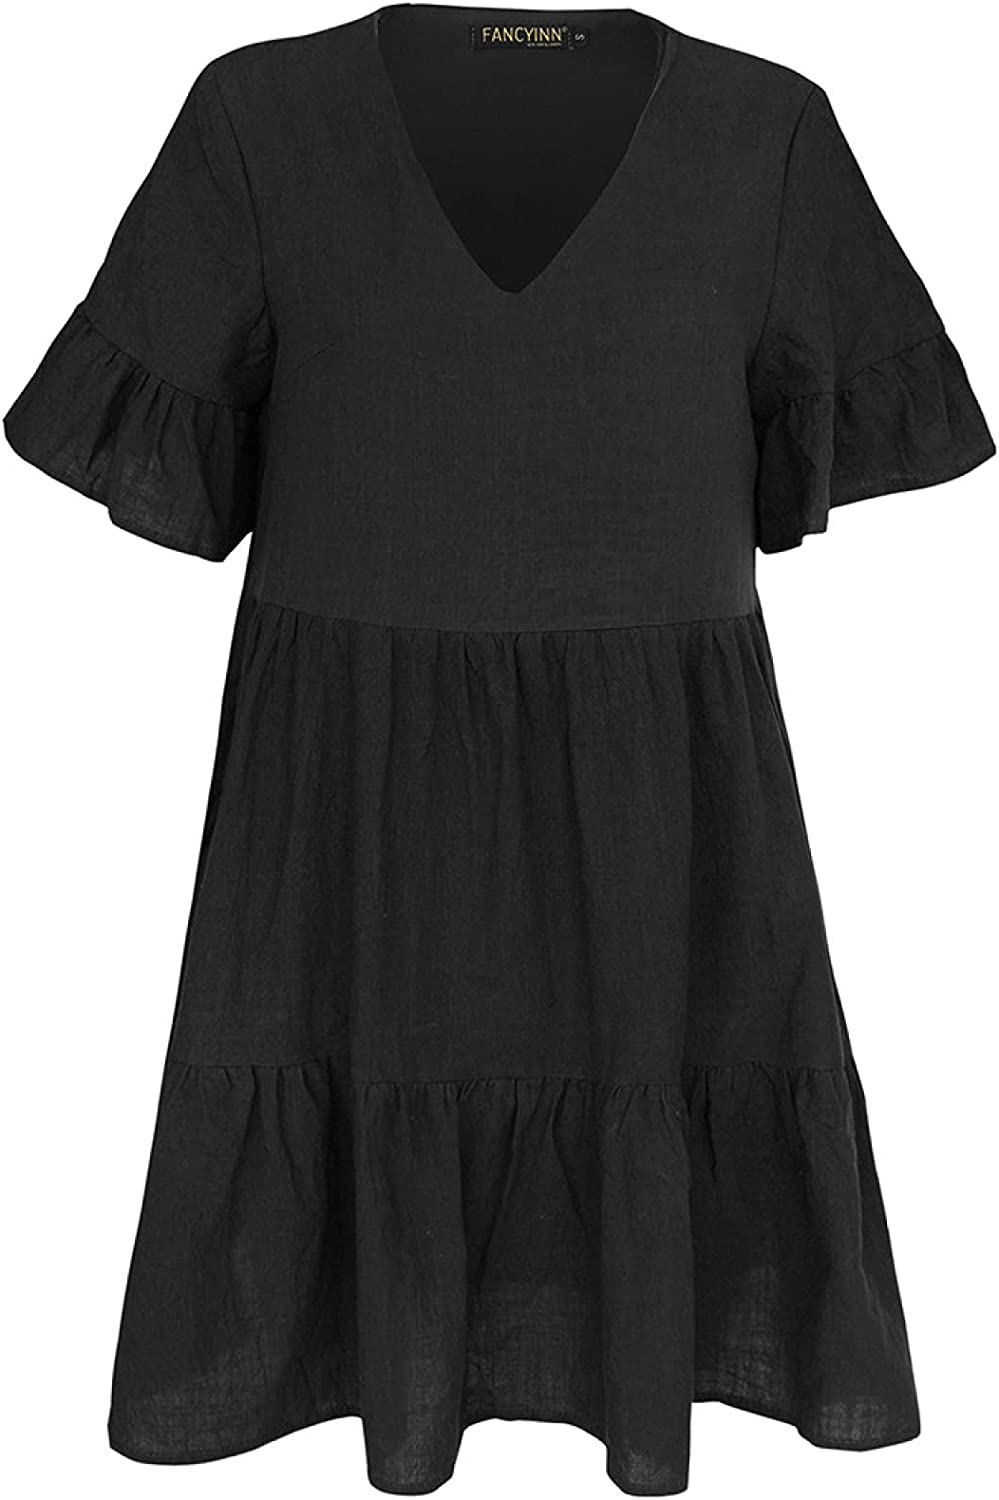 GenericBrands Women's Attention brand Dress European American Low-Cu New product!! Summer and